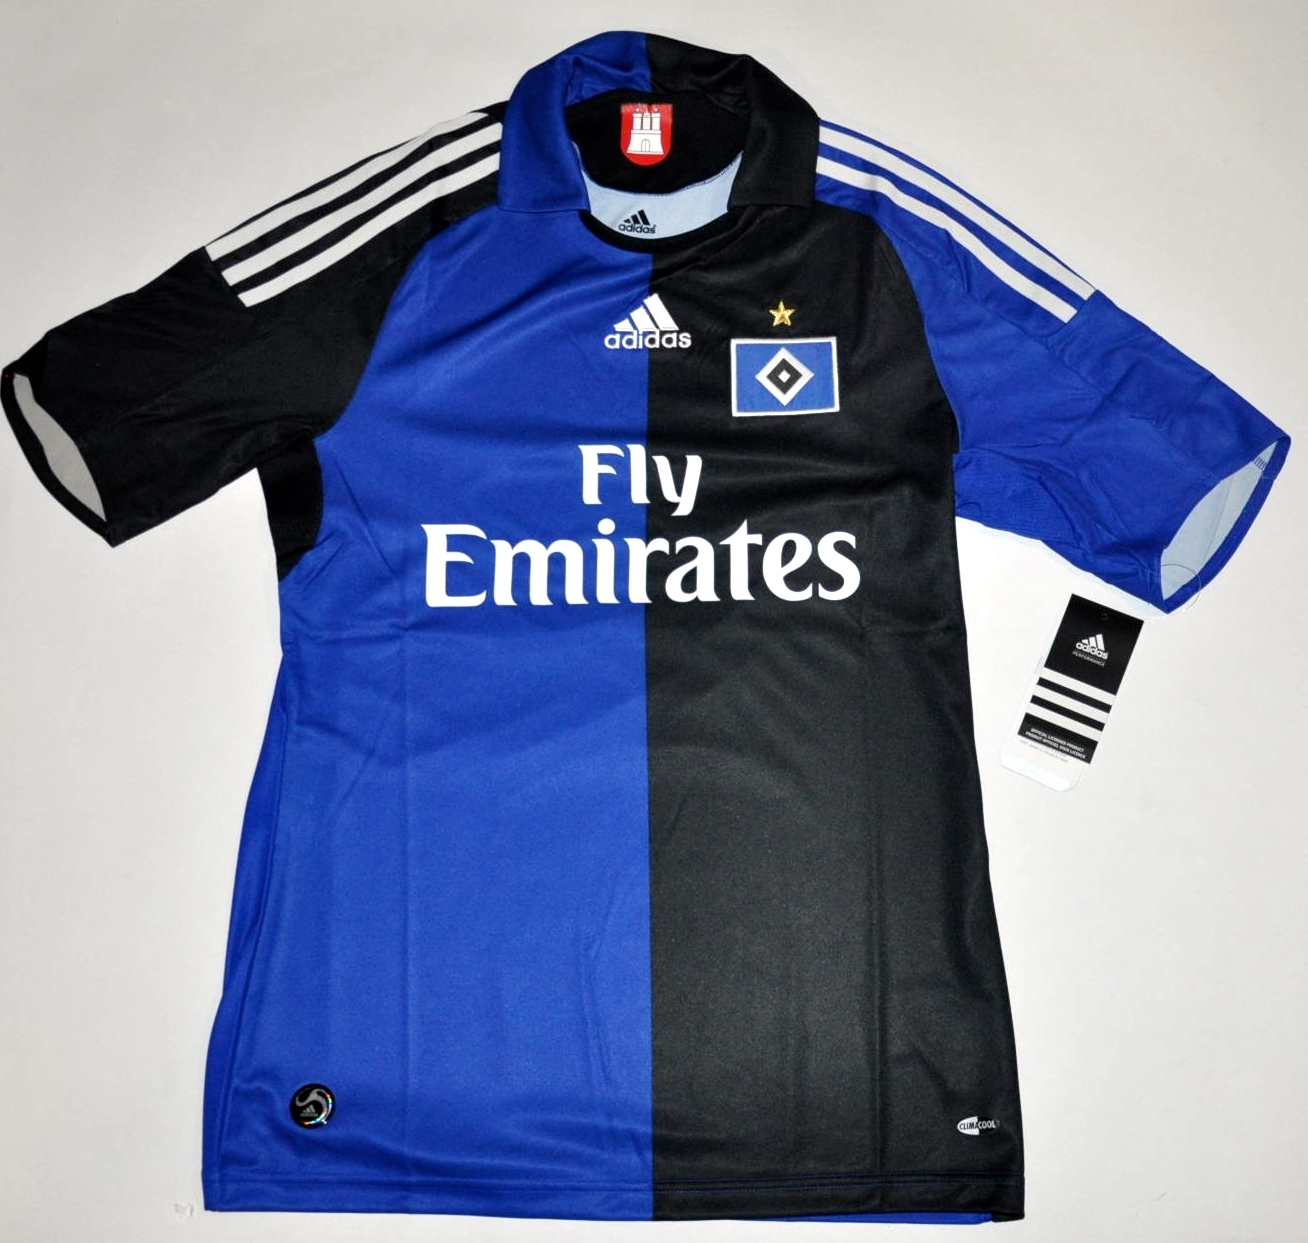 2008 10 hsv trikot gr s hamburg adidas originals blau. Black Bedroom Furniture Sets. Home Design Ideas